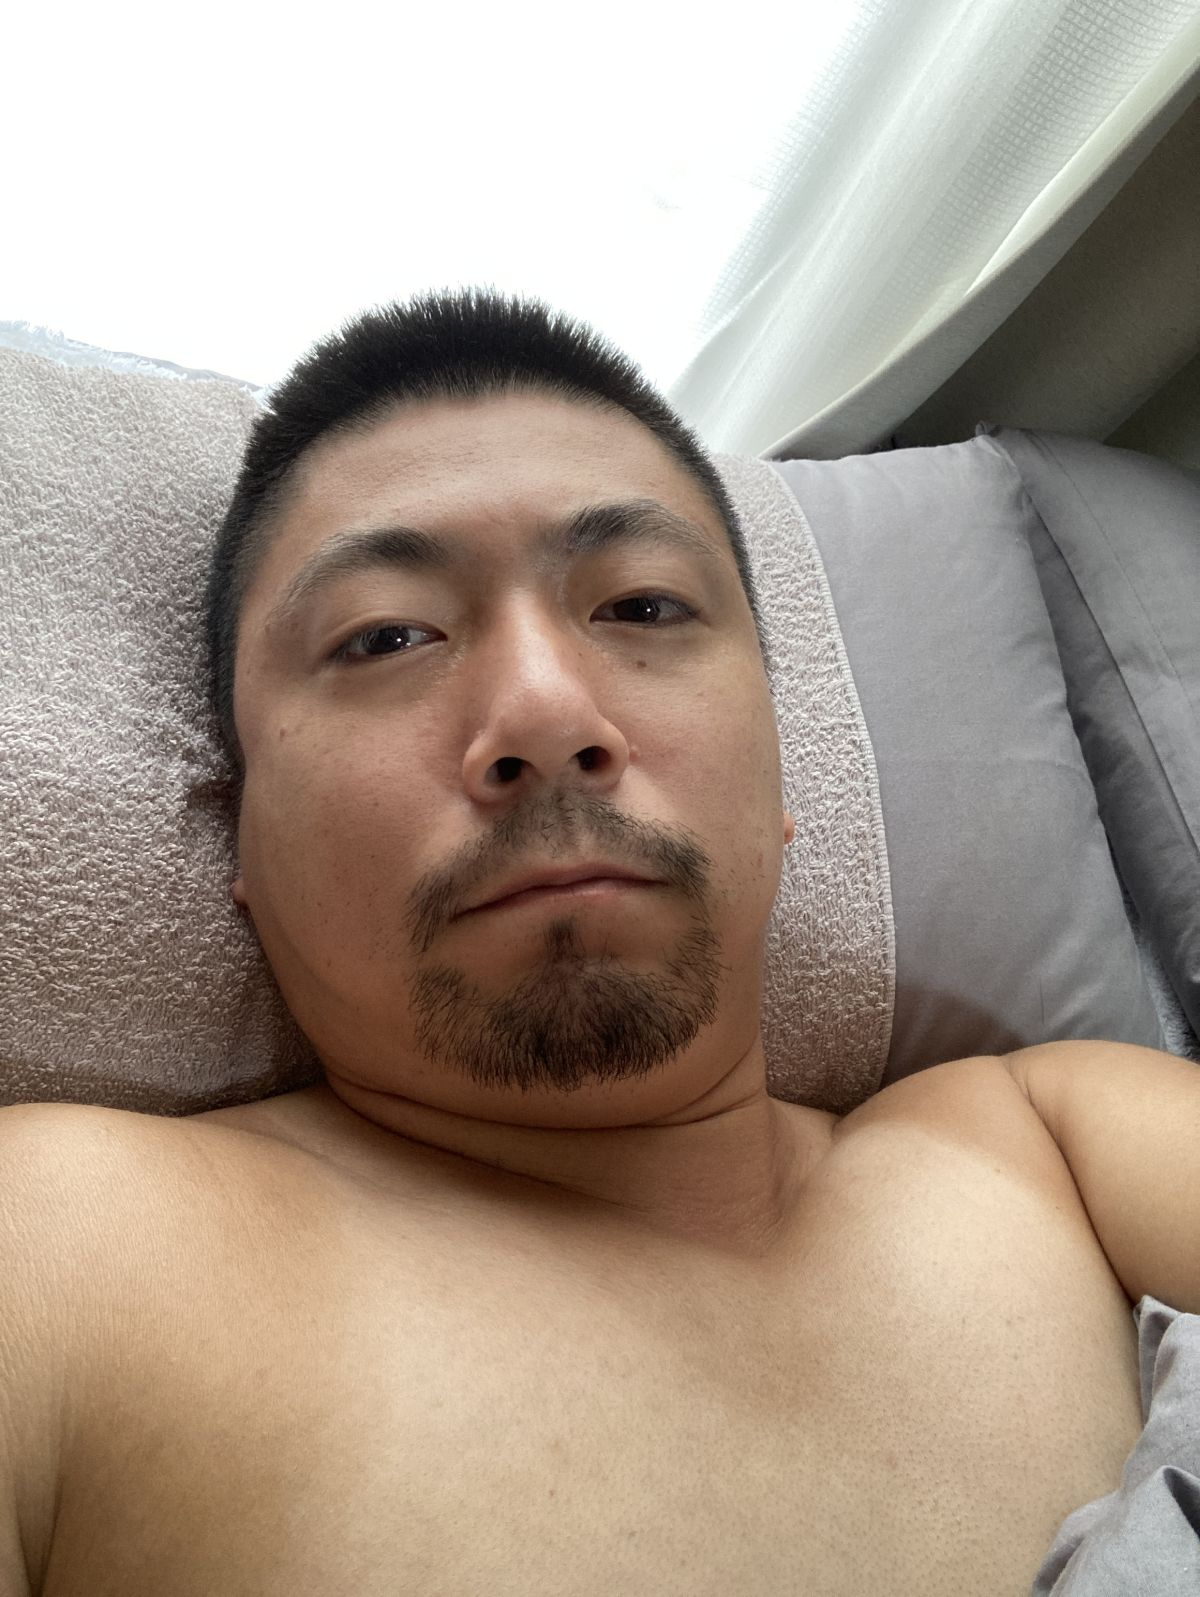 Ryotaro photos and videos onlyfans leaked